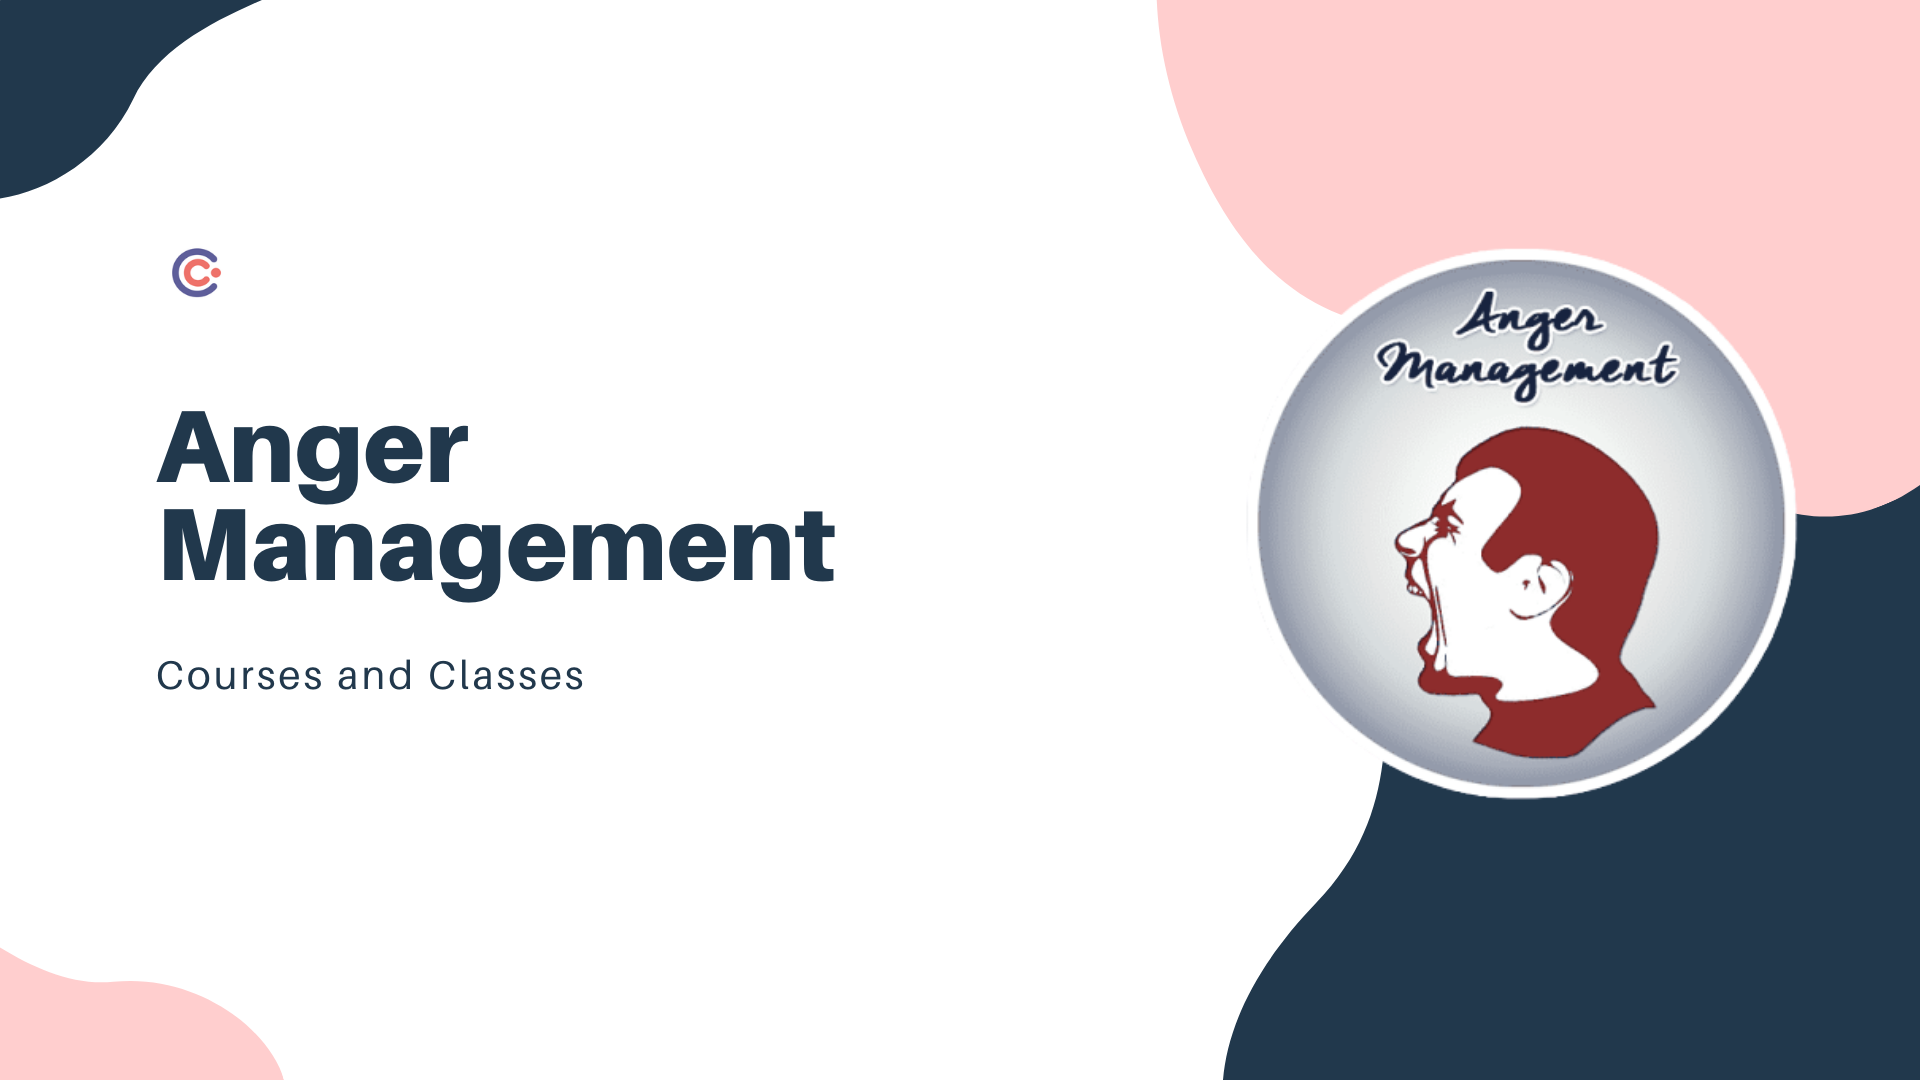 6 Best Anger Management  Courses and Classes - Learn Anger Management  Online